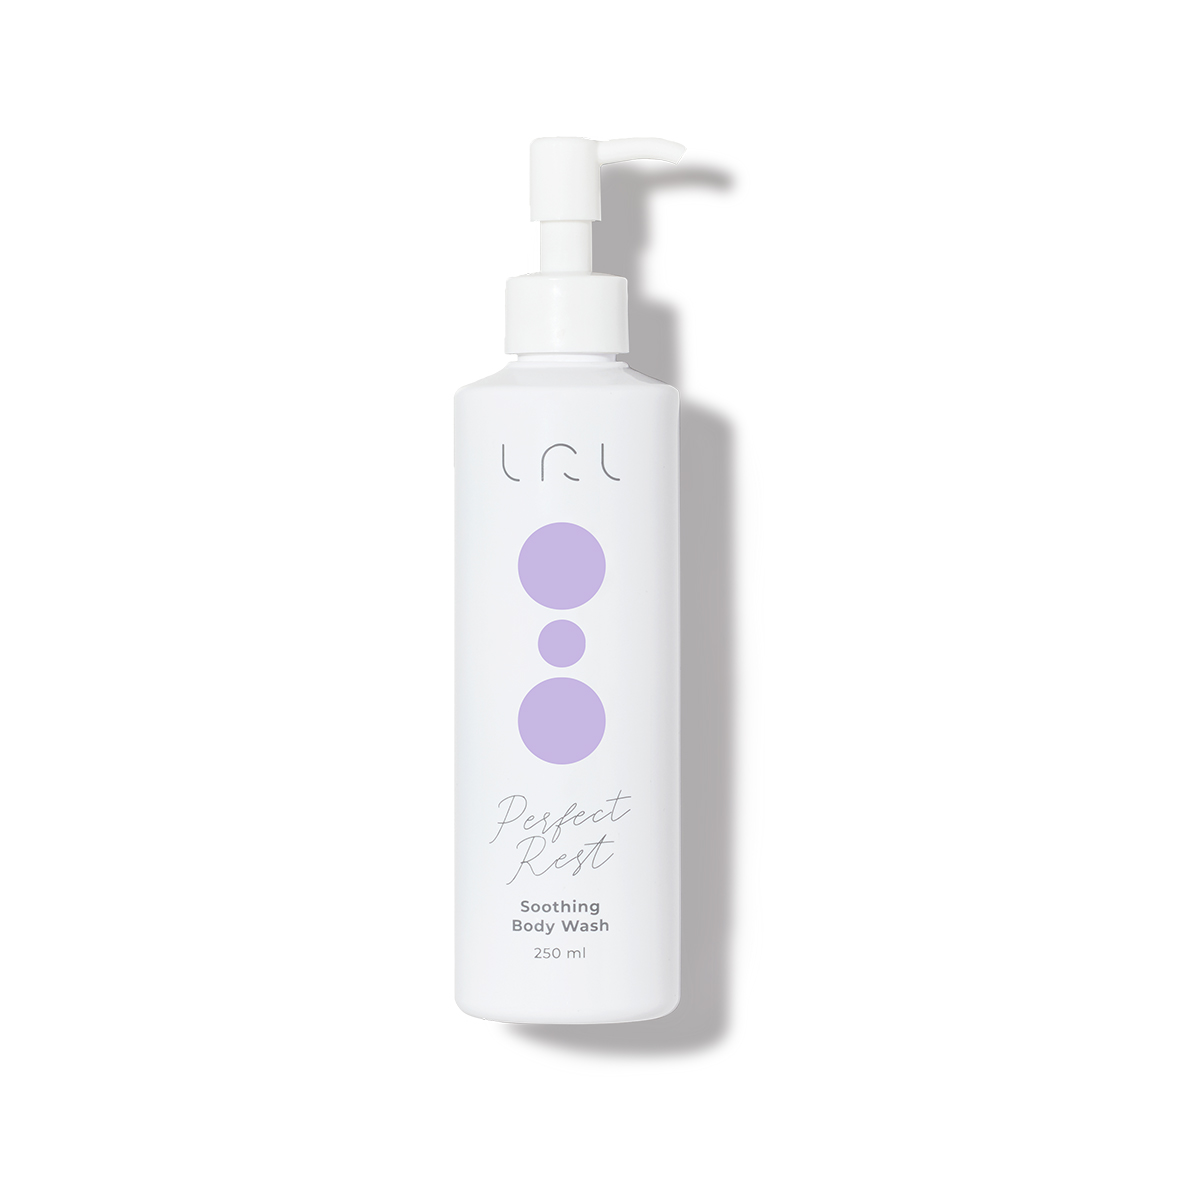 LRL_Perfect_rest_Soothing_body_wash